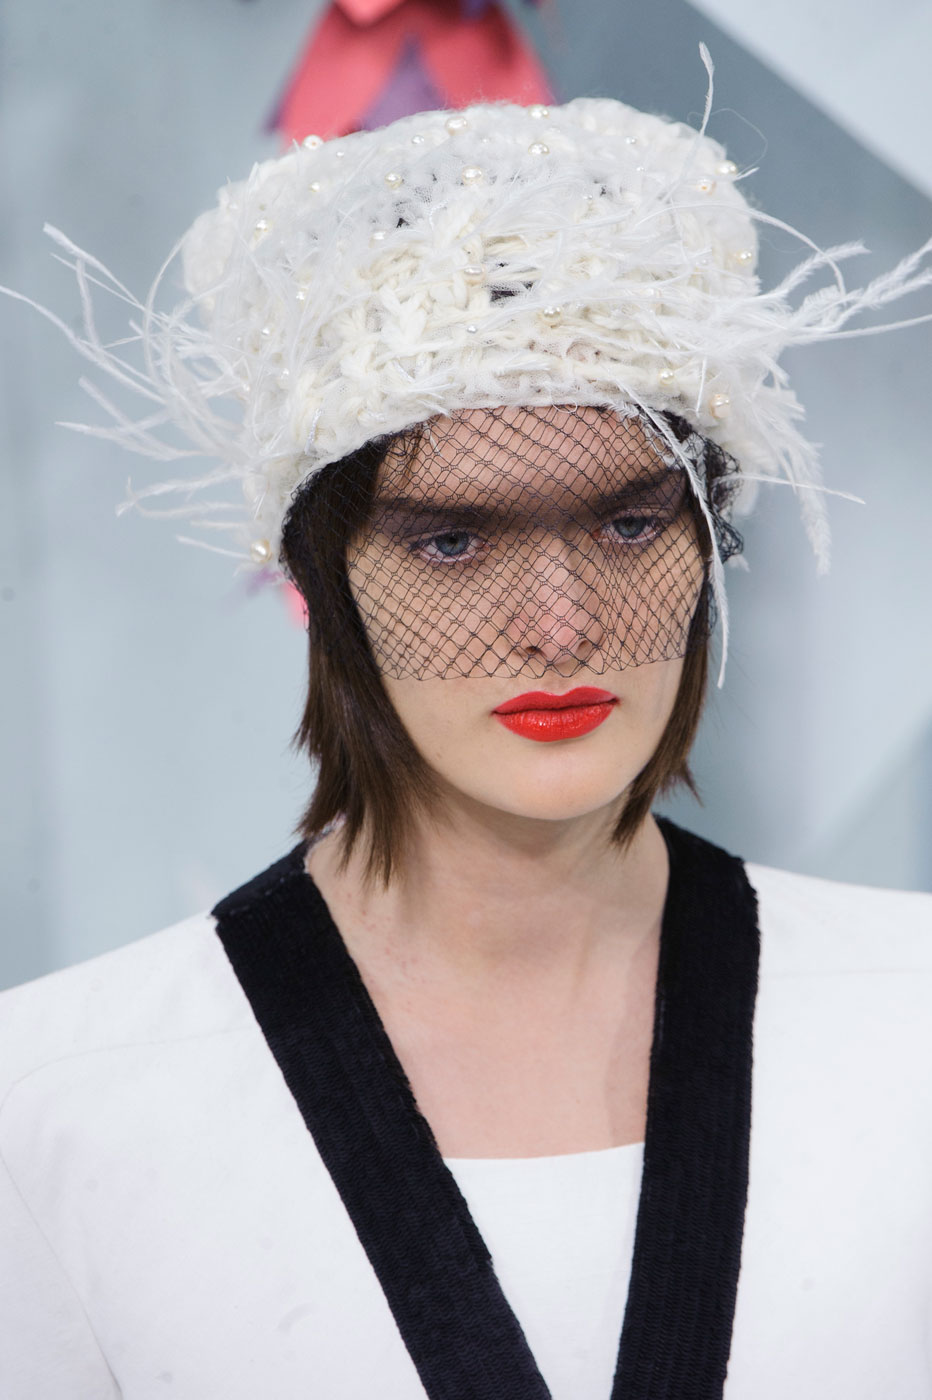 Chanel-fashion-runway-show-close-ups-haute-couture-paris-spring-summer-2015-the-impression-023